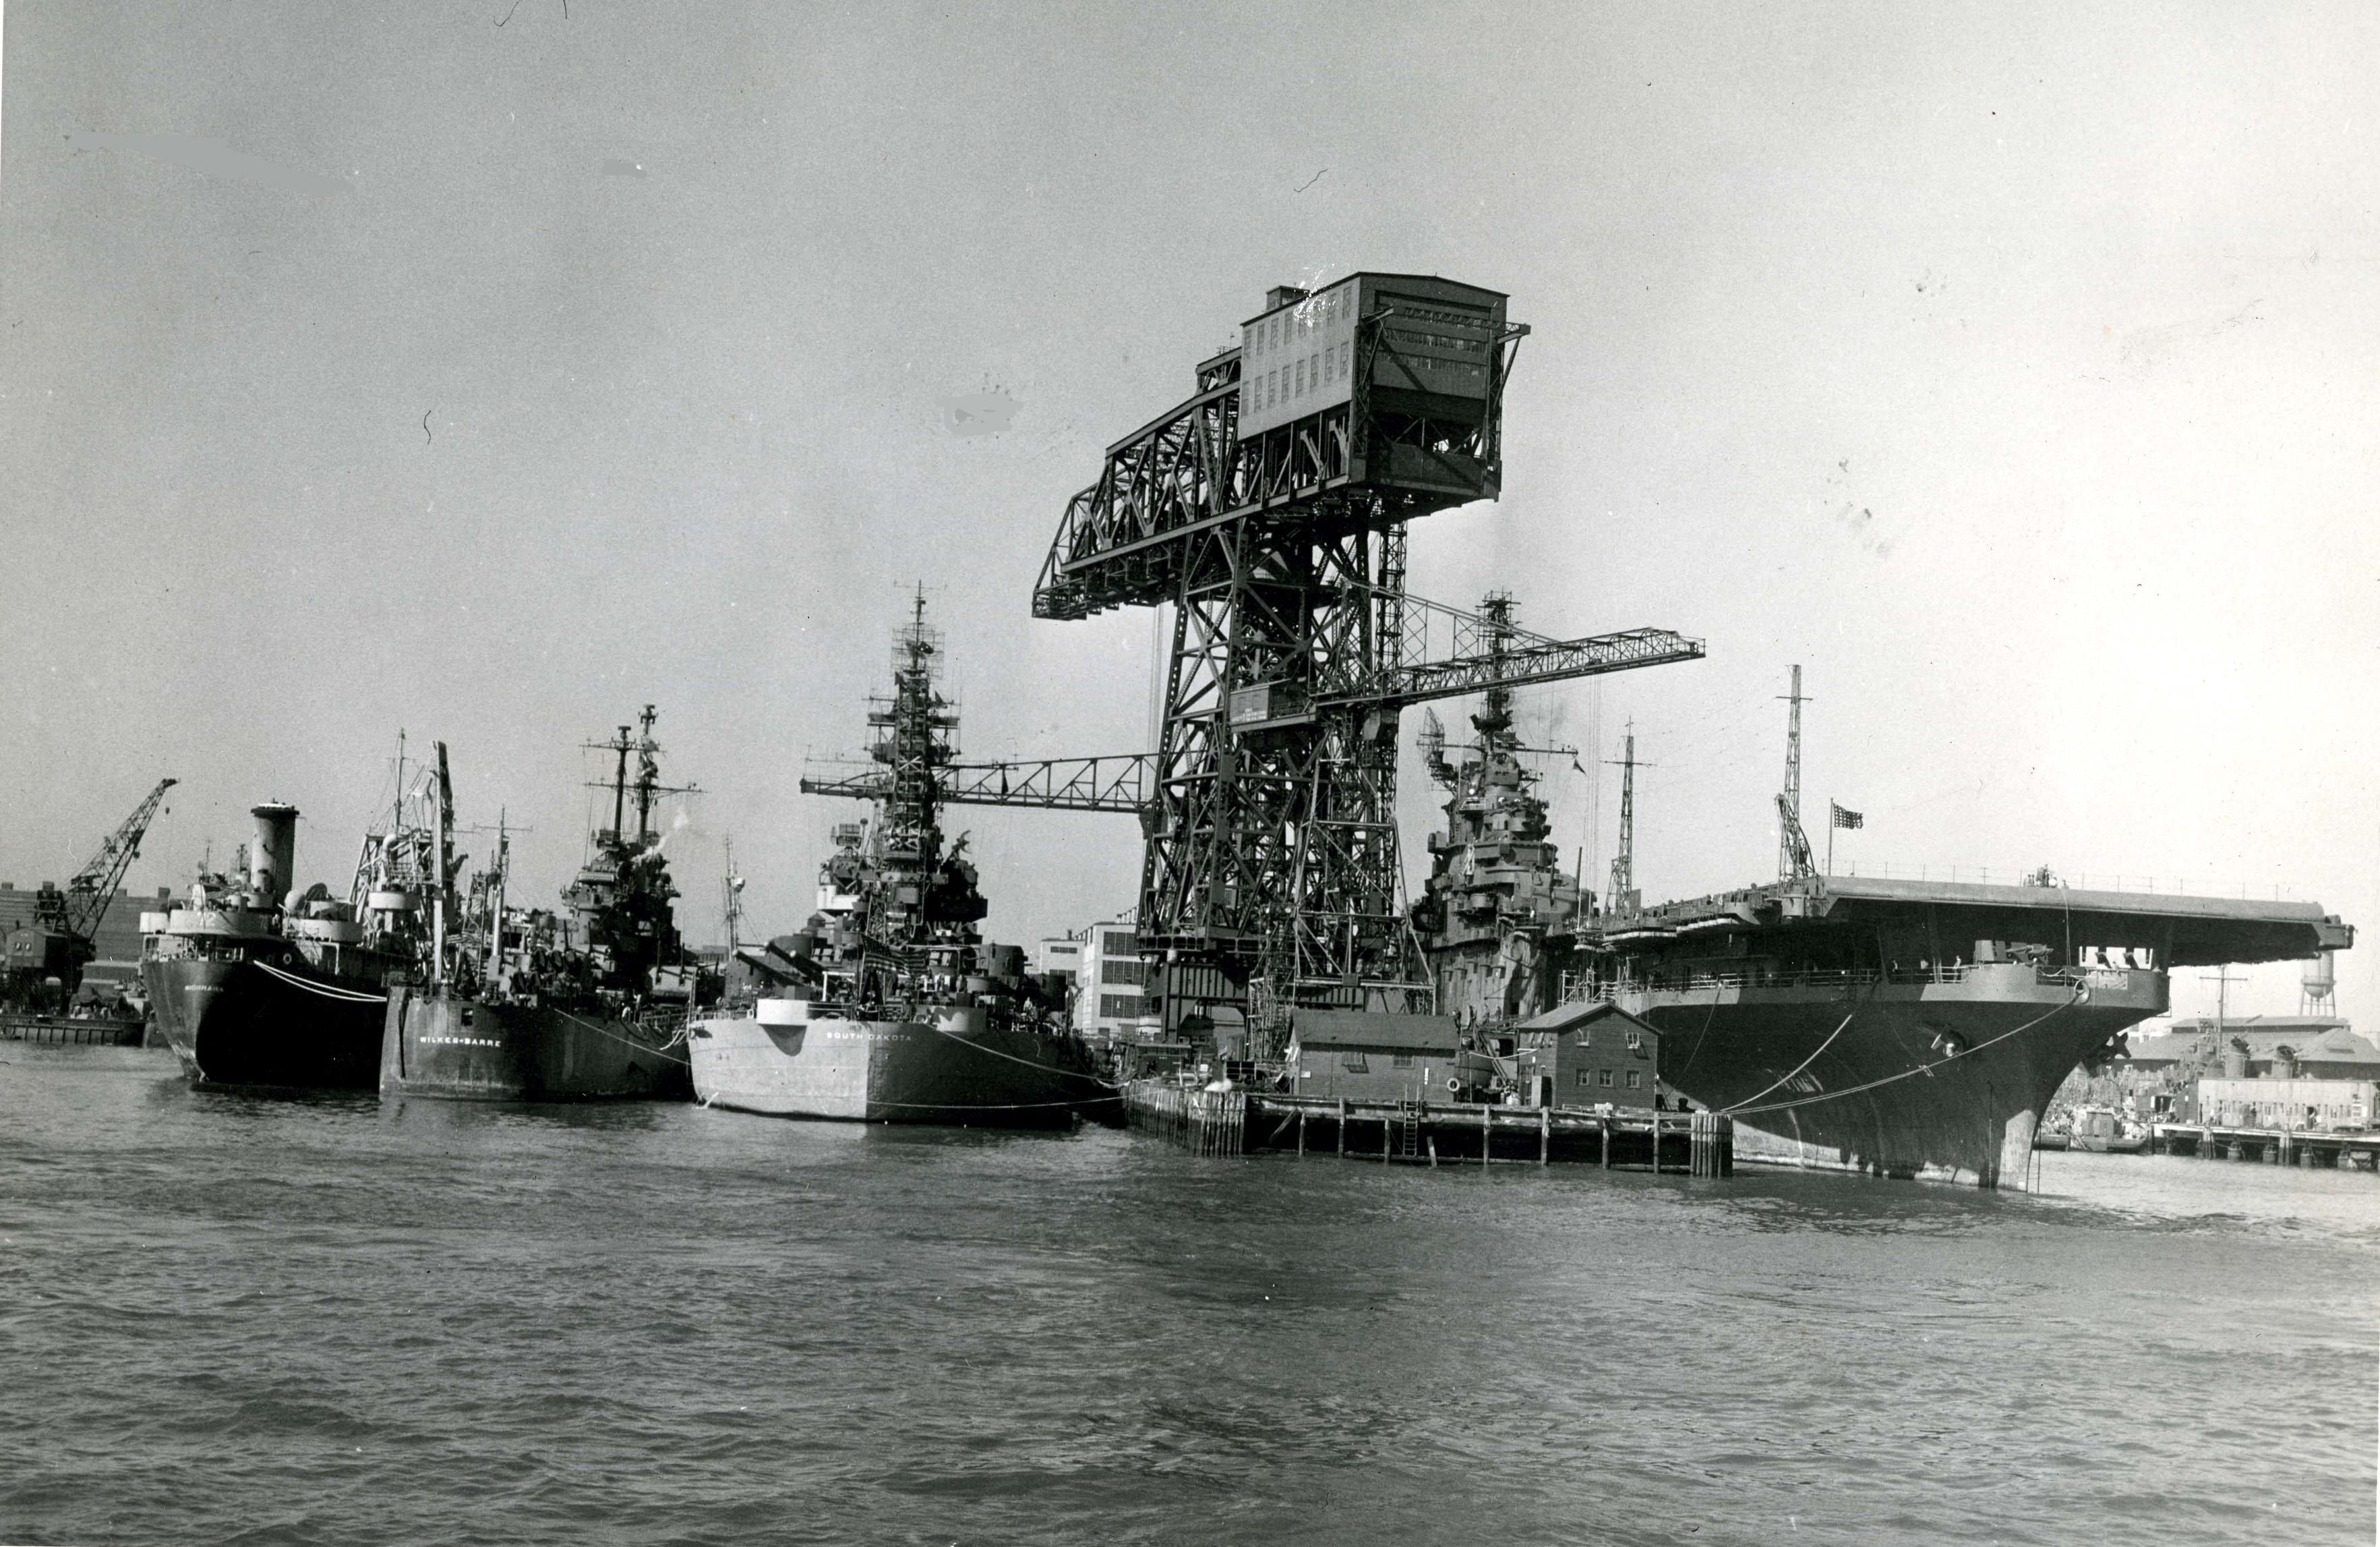 Fighting ships of the u. s. navy moored alongside its famous hammer